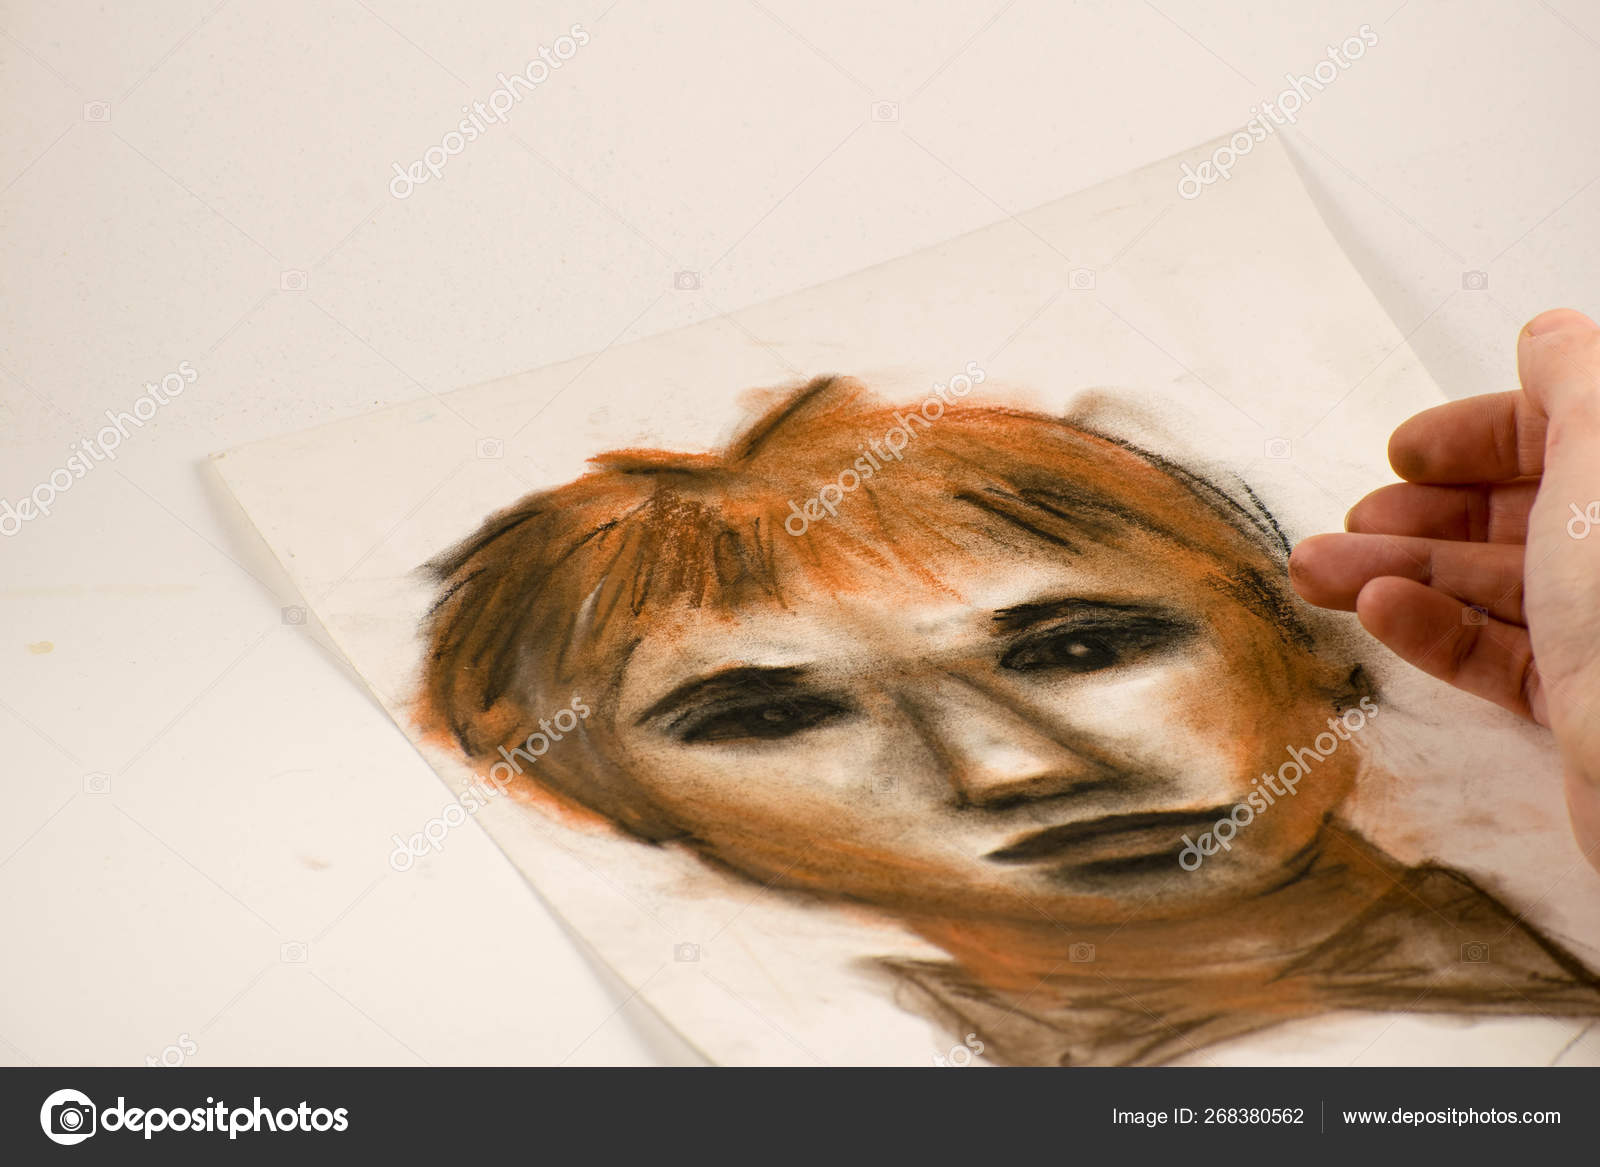 https depositphotos com 268380562 stock photo drawing by sanguine pencil and html